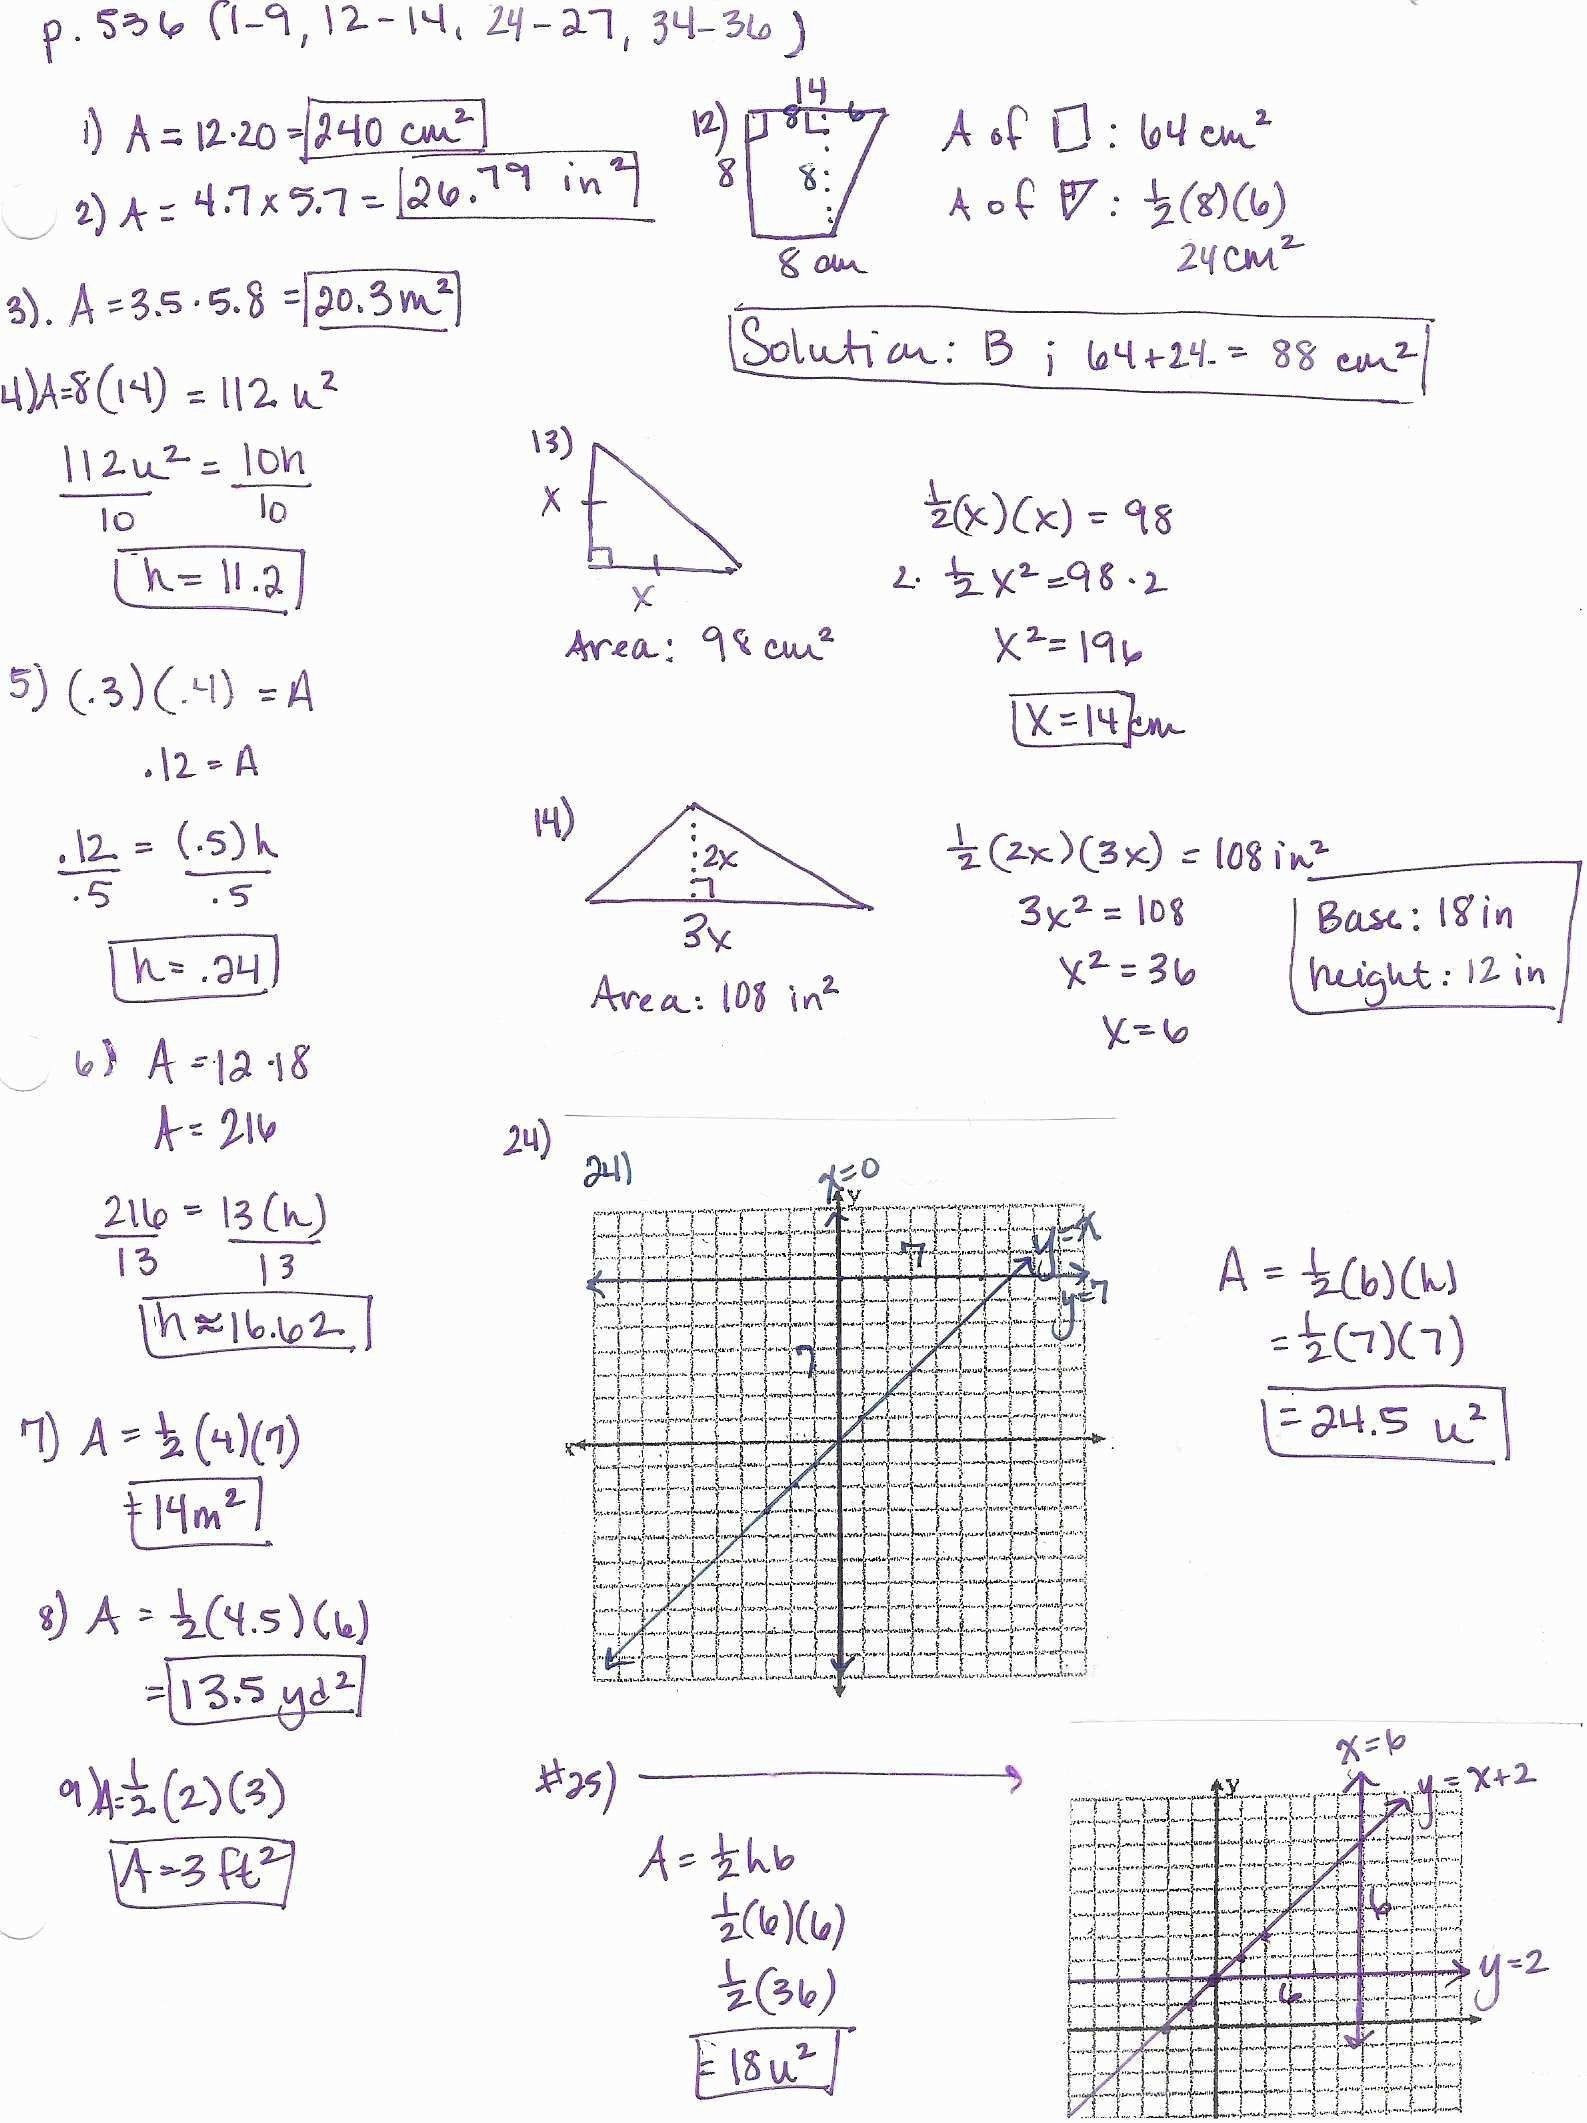 Geometric Proofs Worksheet with Answers Pin On Printable Worksheet for Kids